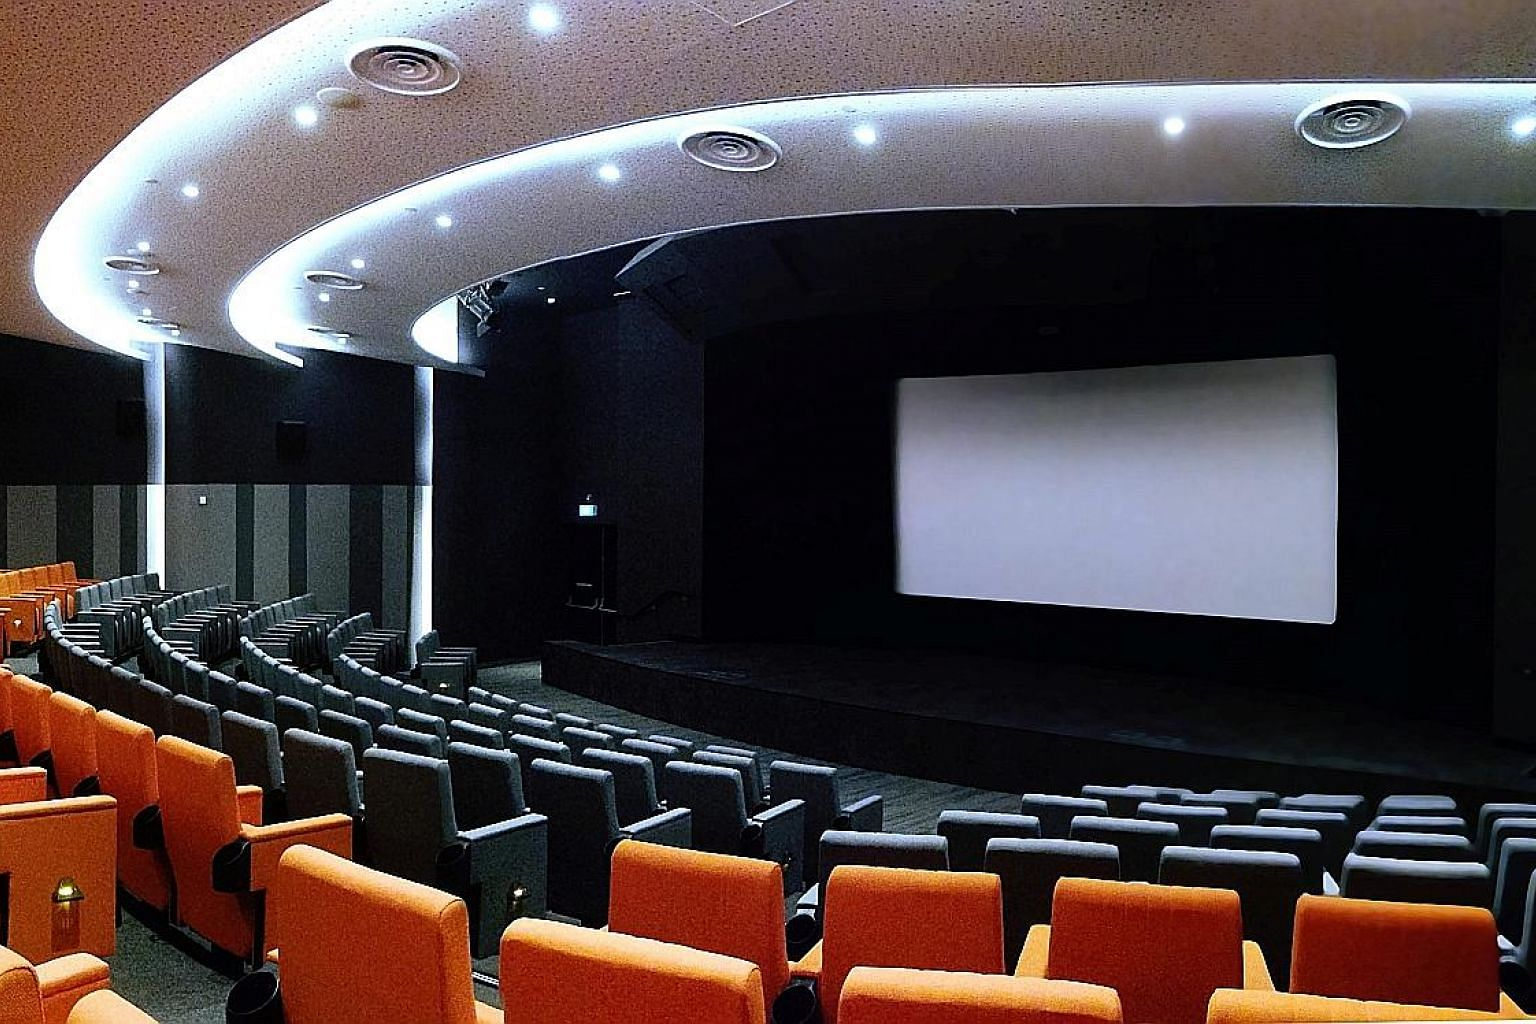 """Salt Media @ Capital Tower in Robinson Road is a cashless cinema that seats 228. It screens only films with """"a valuable message, about family, courage, honour and human rights"""", says Salt Media & Entertainment chief Sherman Ng."""